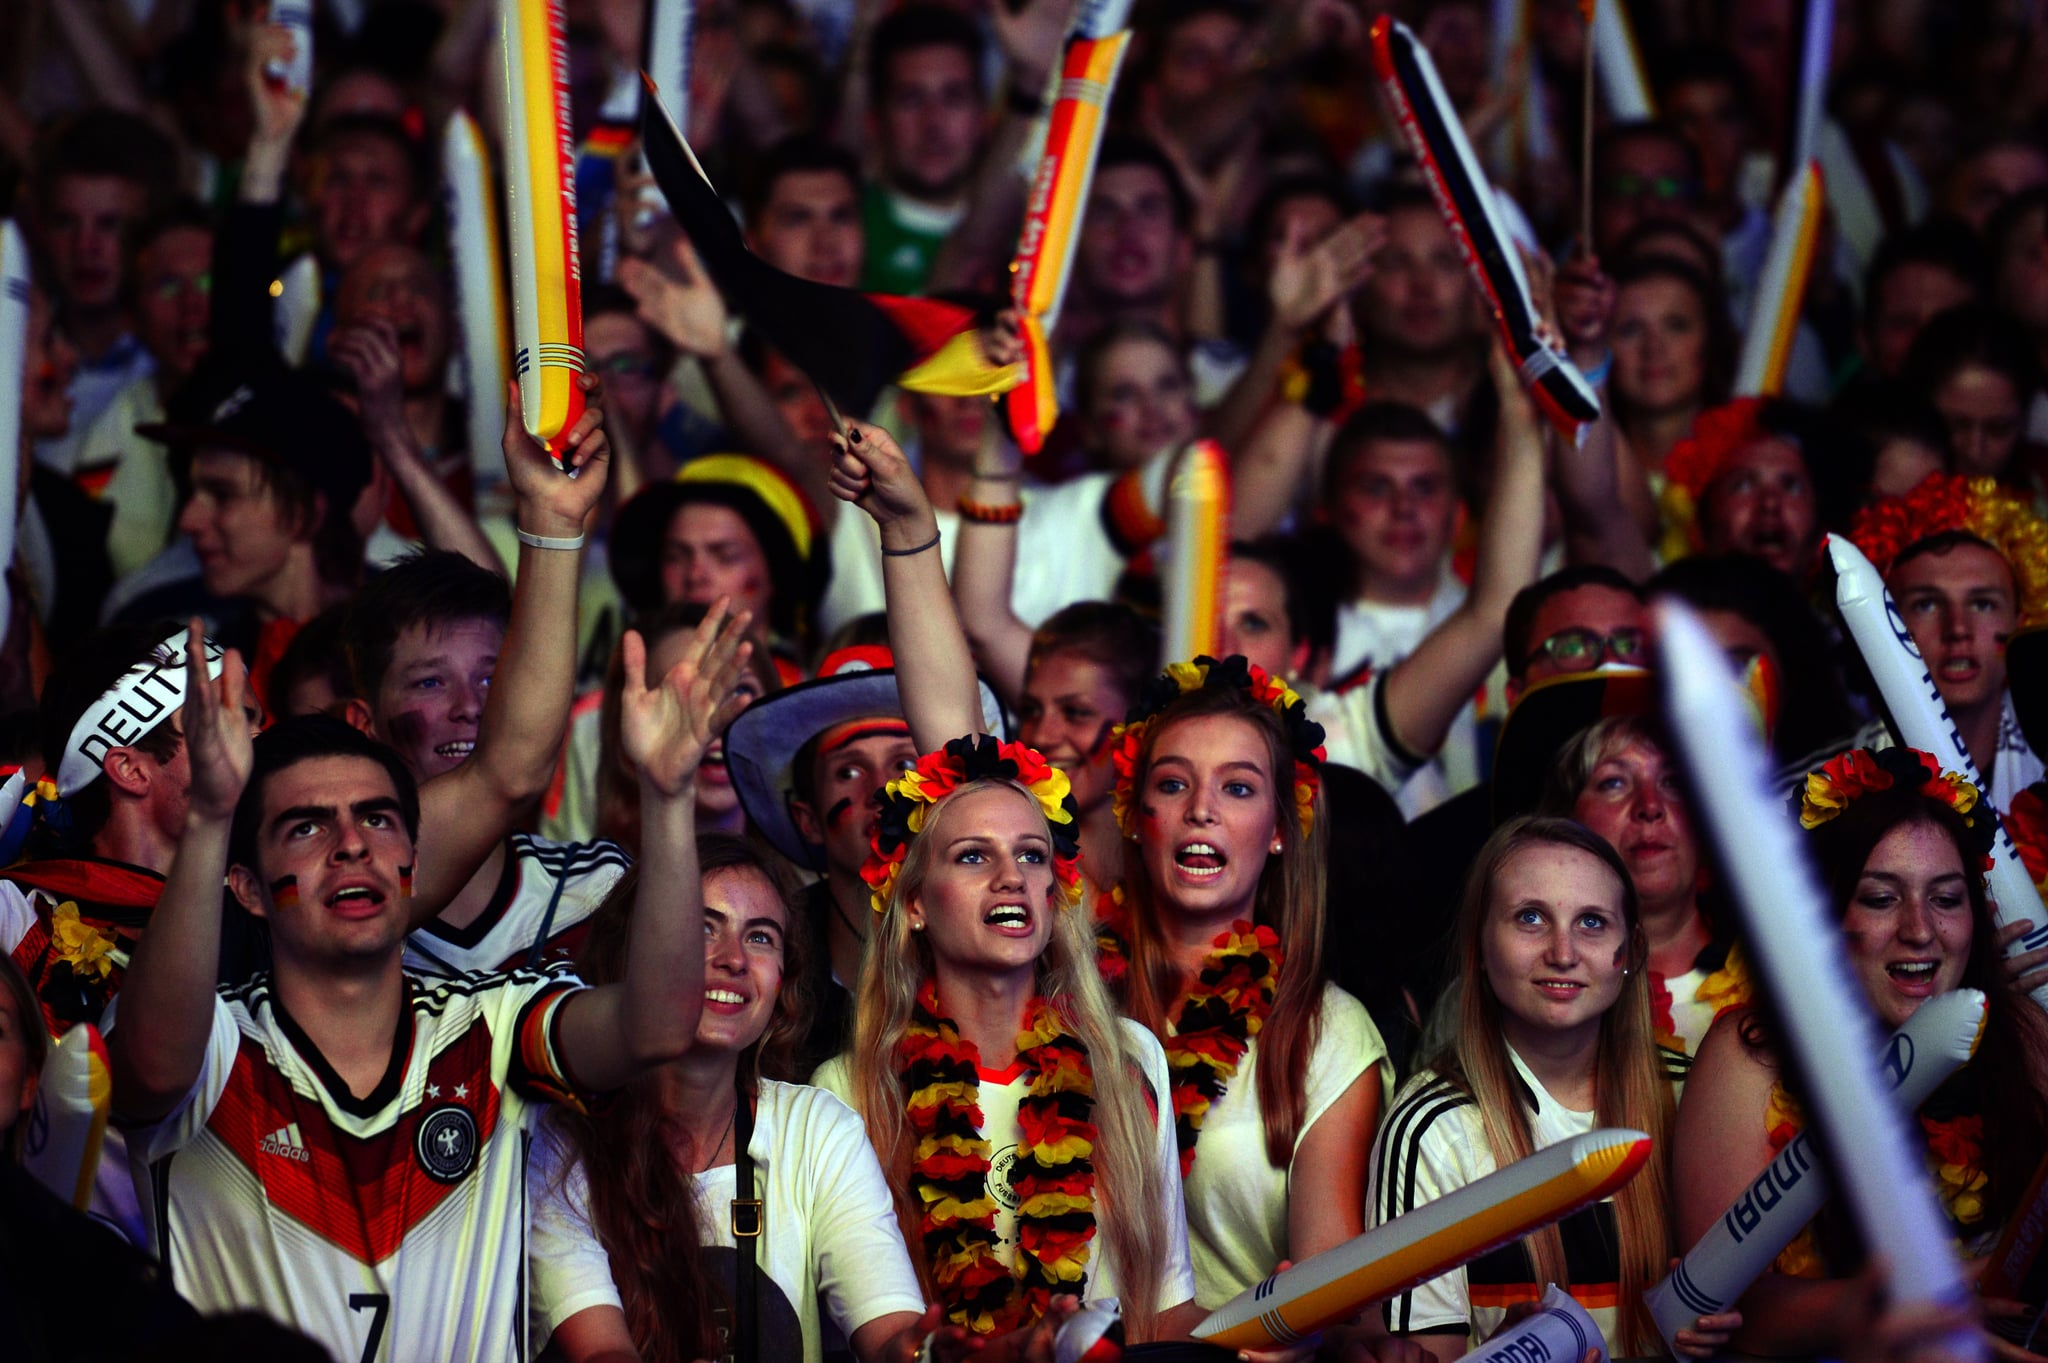 Germany Fans Are Just Losing Their Minds